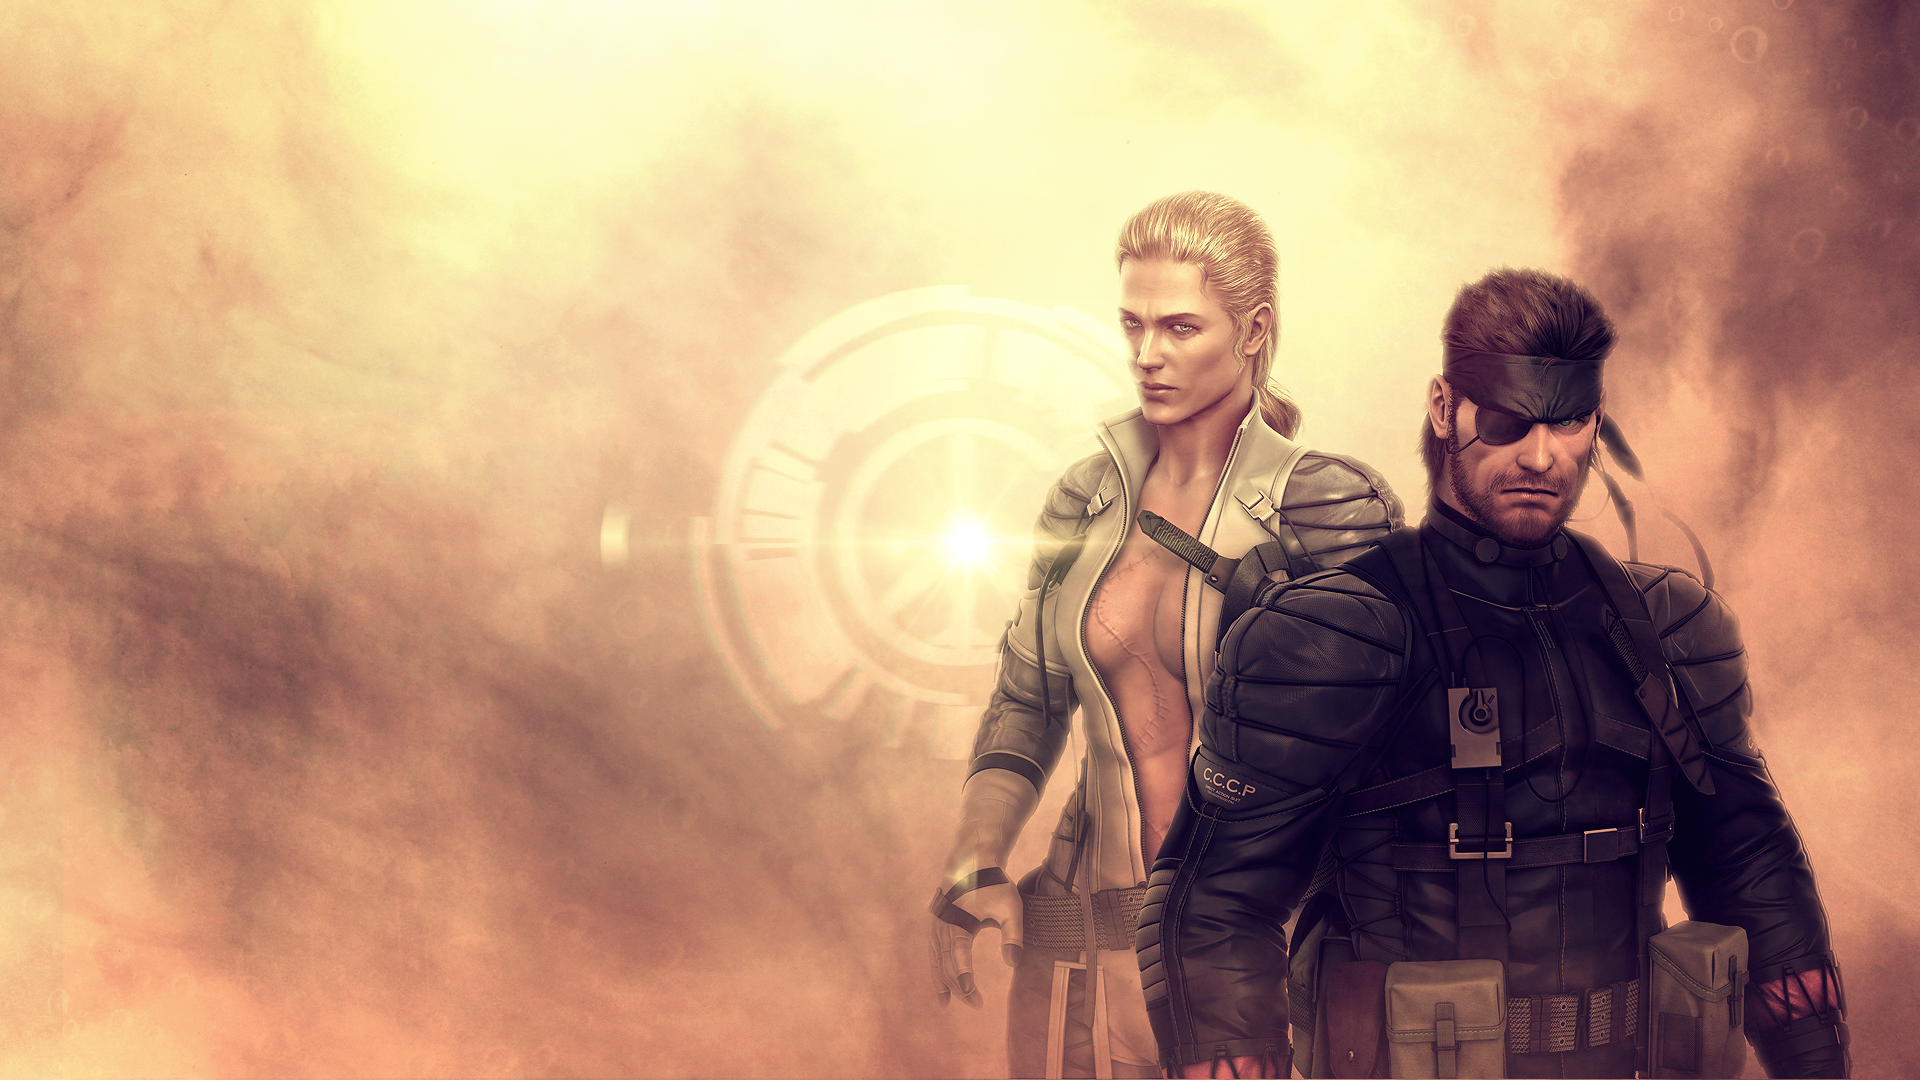 The Boss And Snake Metal Gear Solid By Freshpaprika On Deviantart